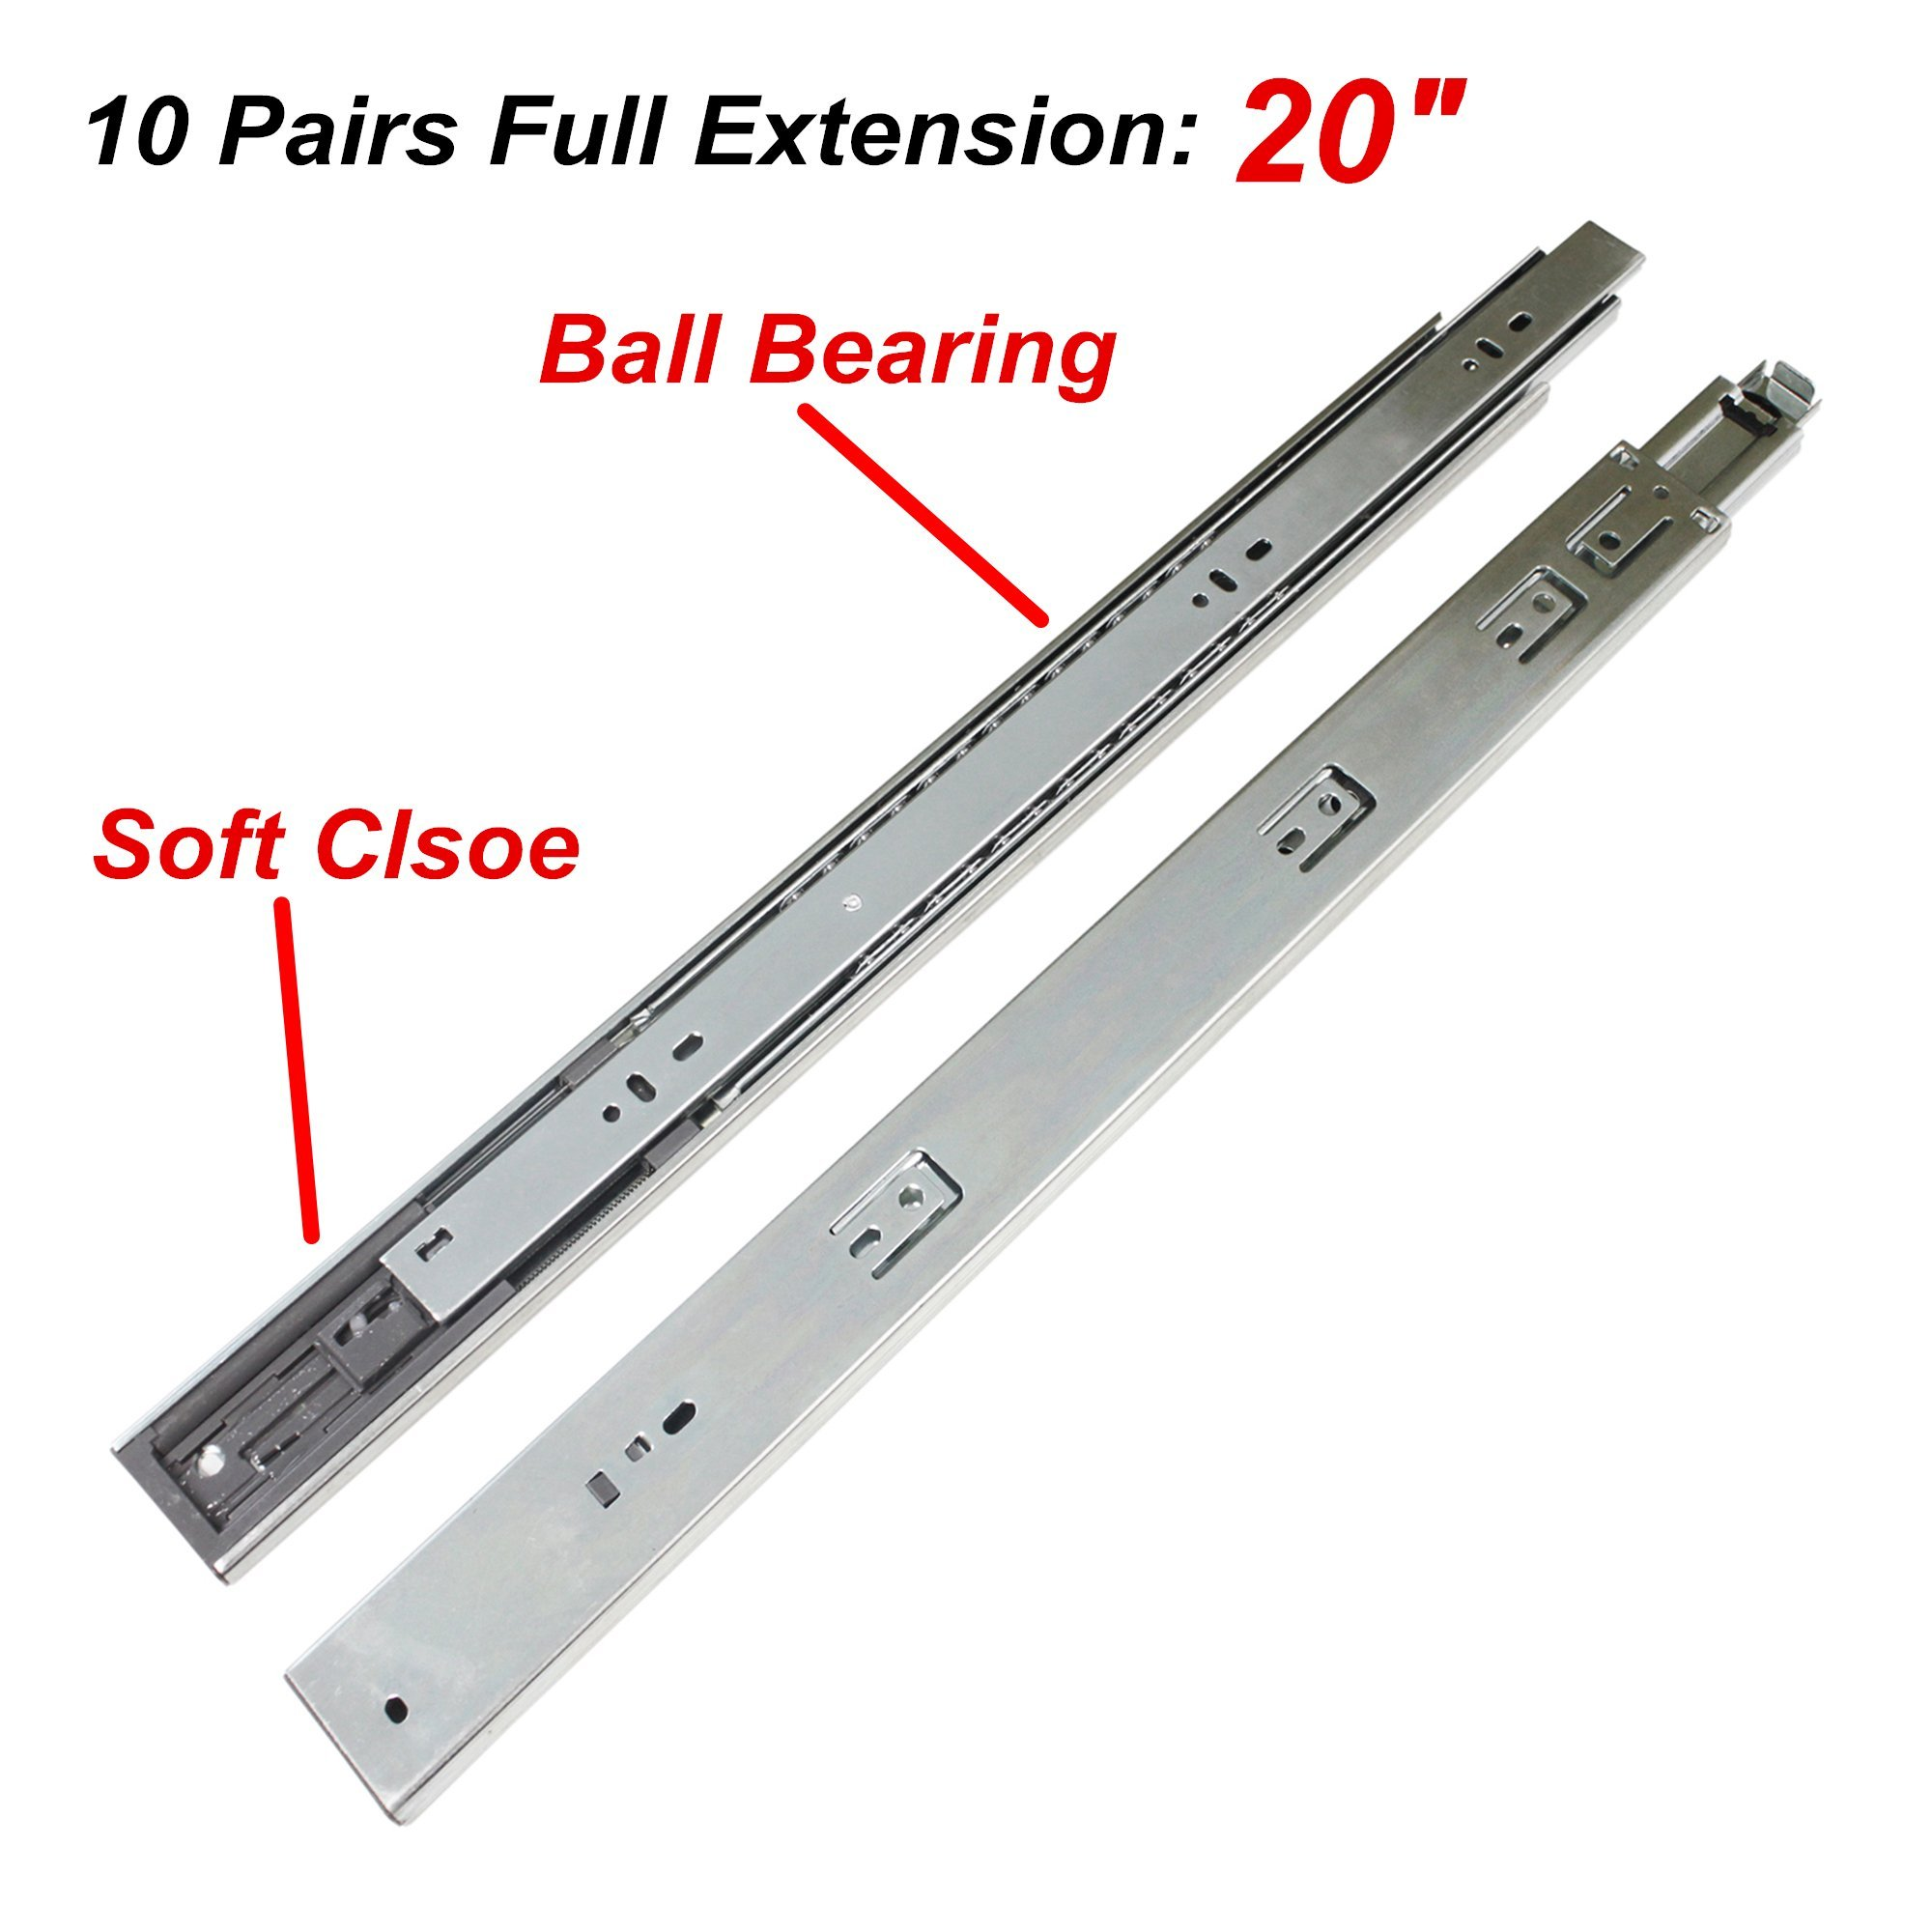 Home Building Store 10 pairs Soft Close Ball Bearing Side Mount Drawer Slides 3-Folds Full Extension 20'' ;100-Pound Capacity